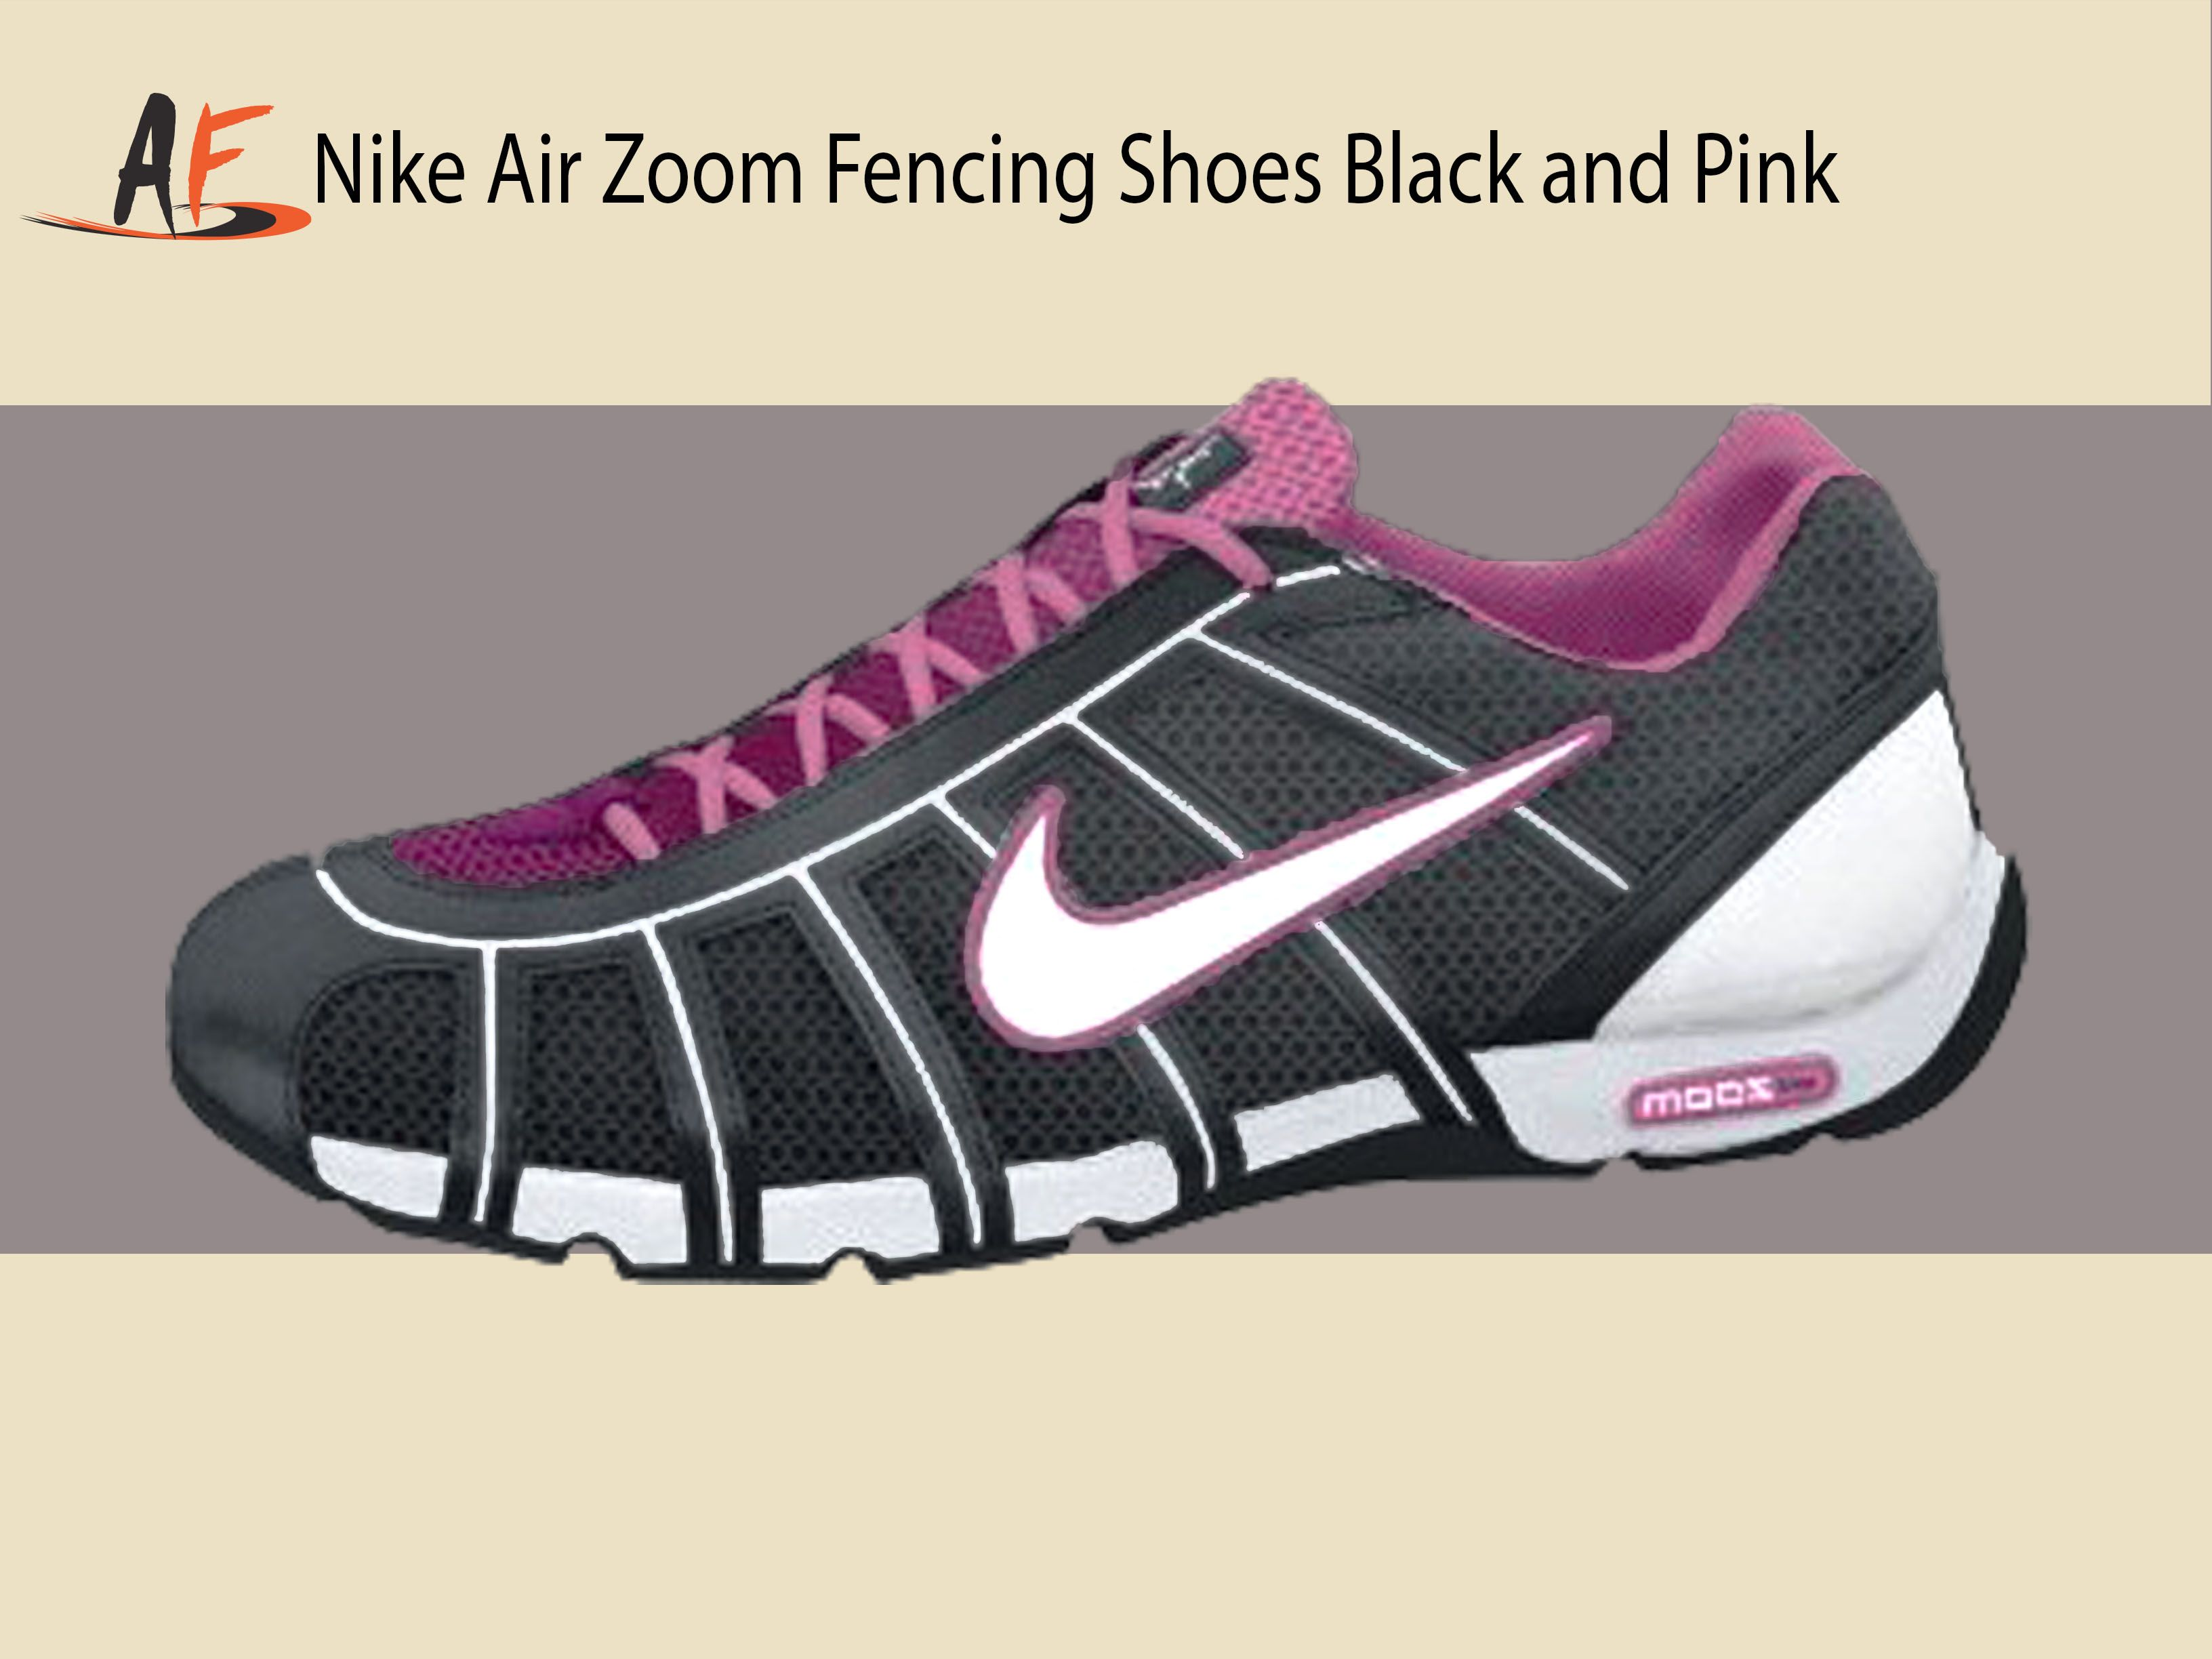 Nike Air Zoom Fencing Shoes Black and Pink Fencing Shoes 116c9f4a7